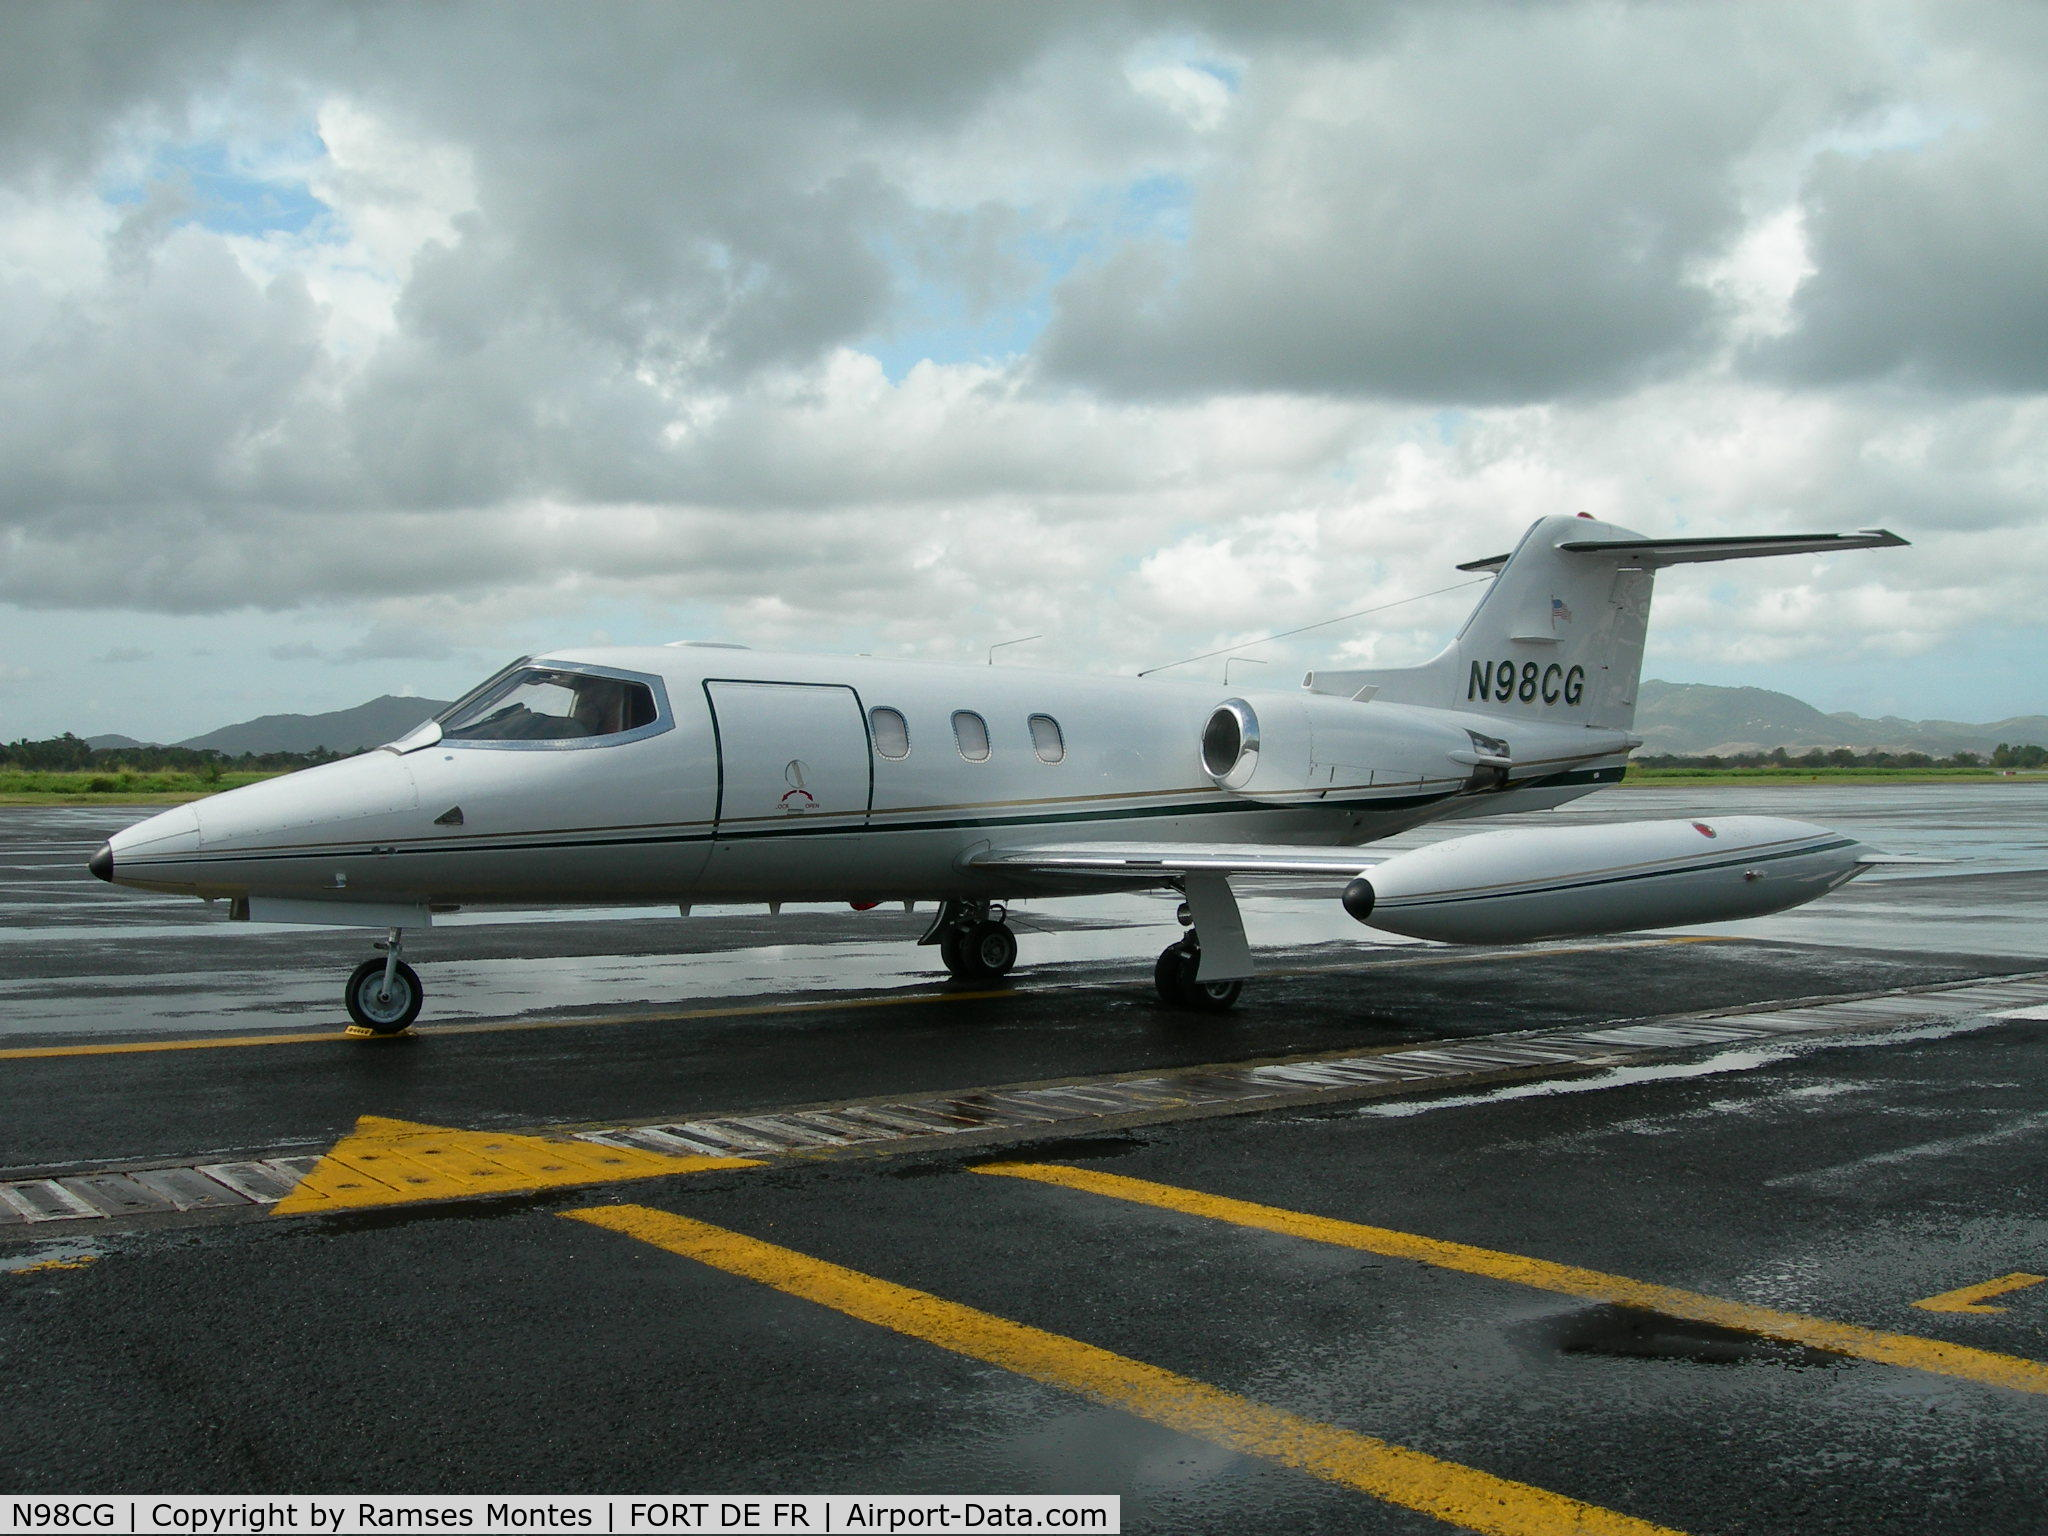 N98CG, 1976 Learjet 24D C/N 289, on the ground @ FOF